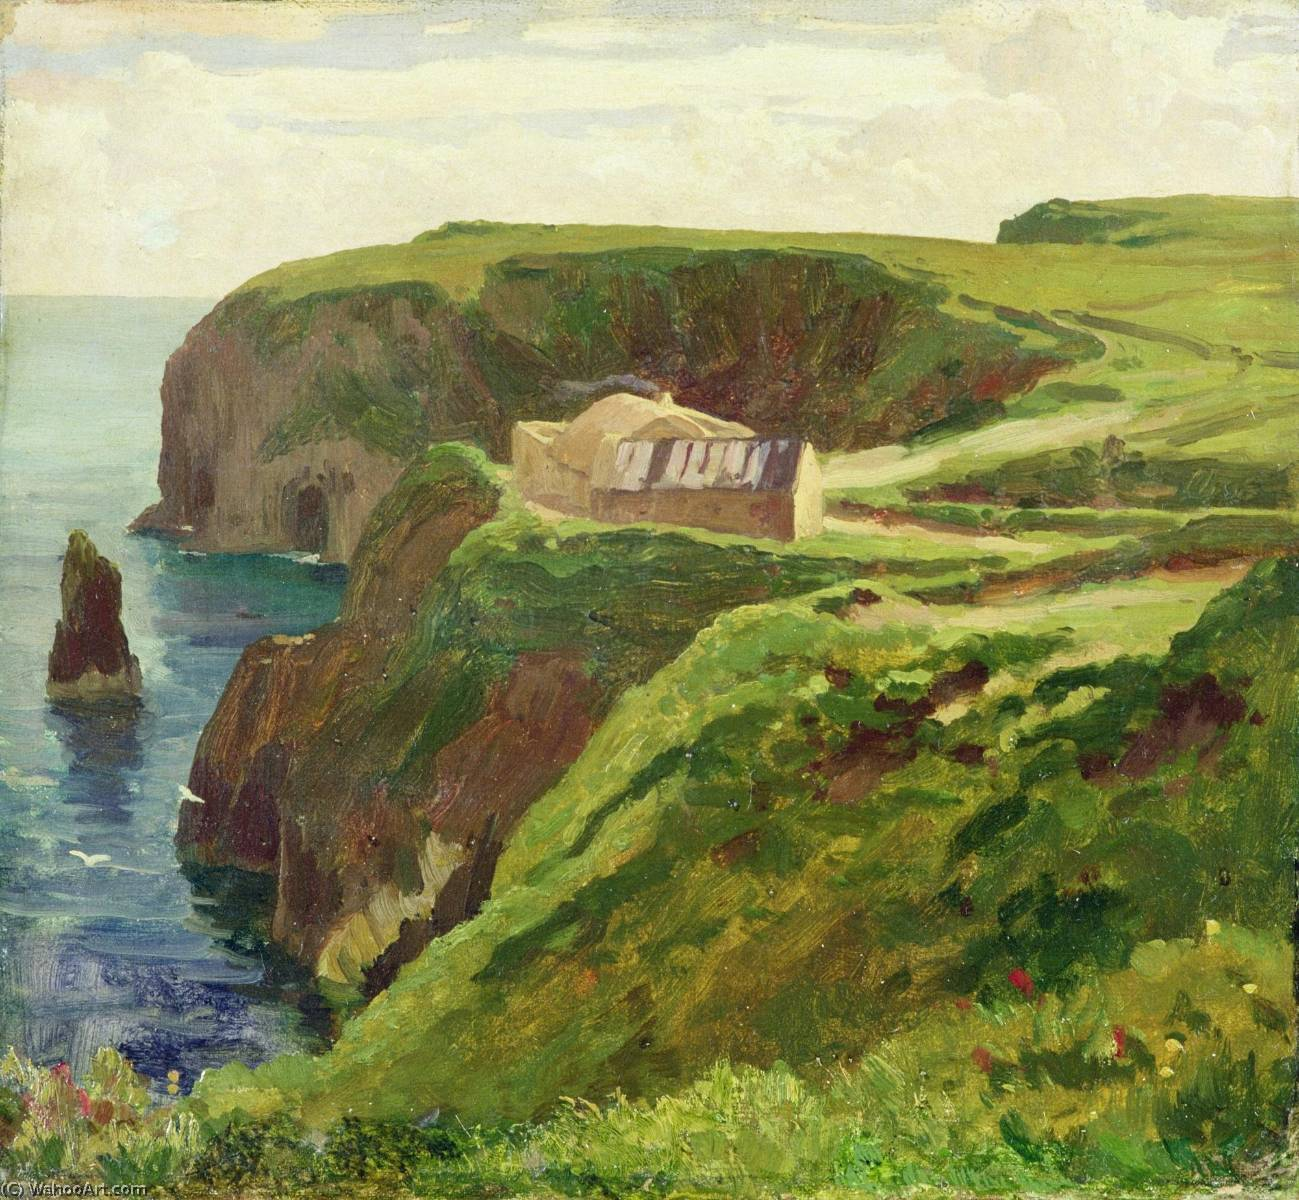 Achat Reproductions De Peintures | Malin Tête , Donegal, 1874 de Lord Frederic Leighton (1830-1896, United Kingdom) | WahooArt.com